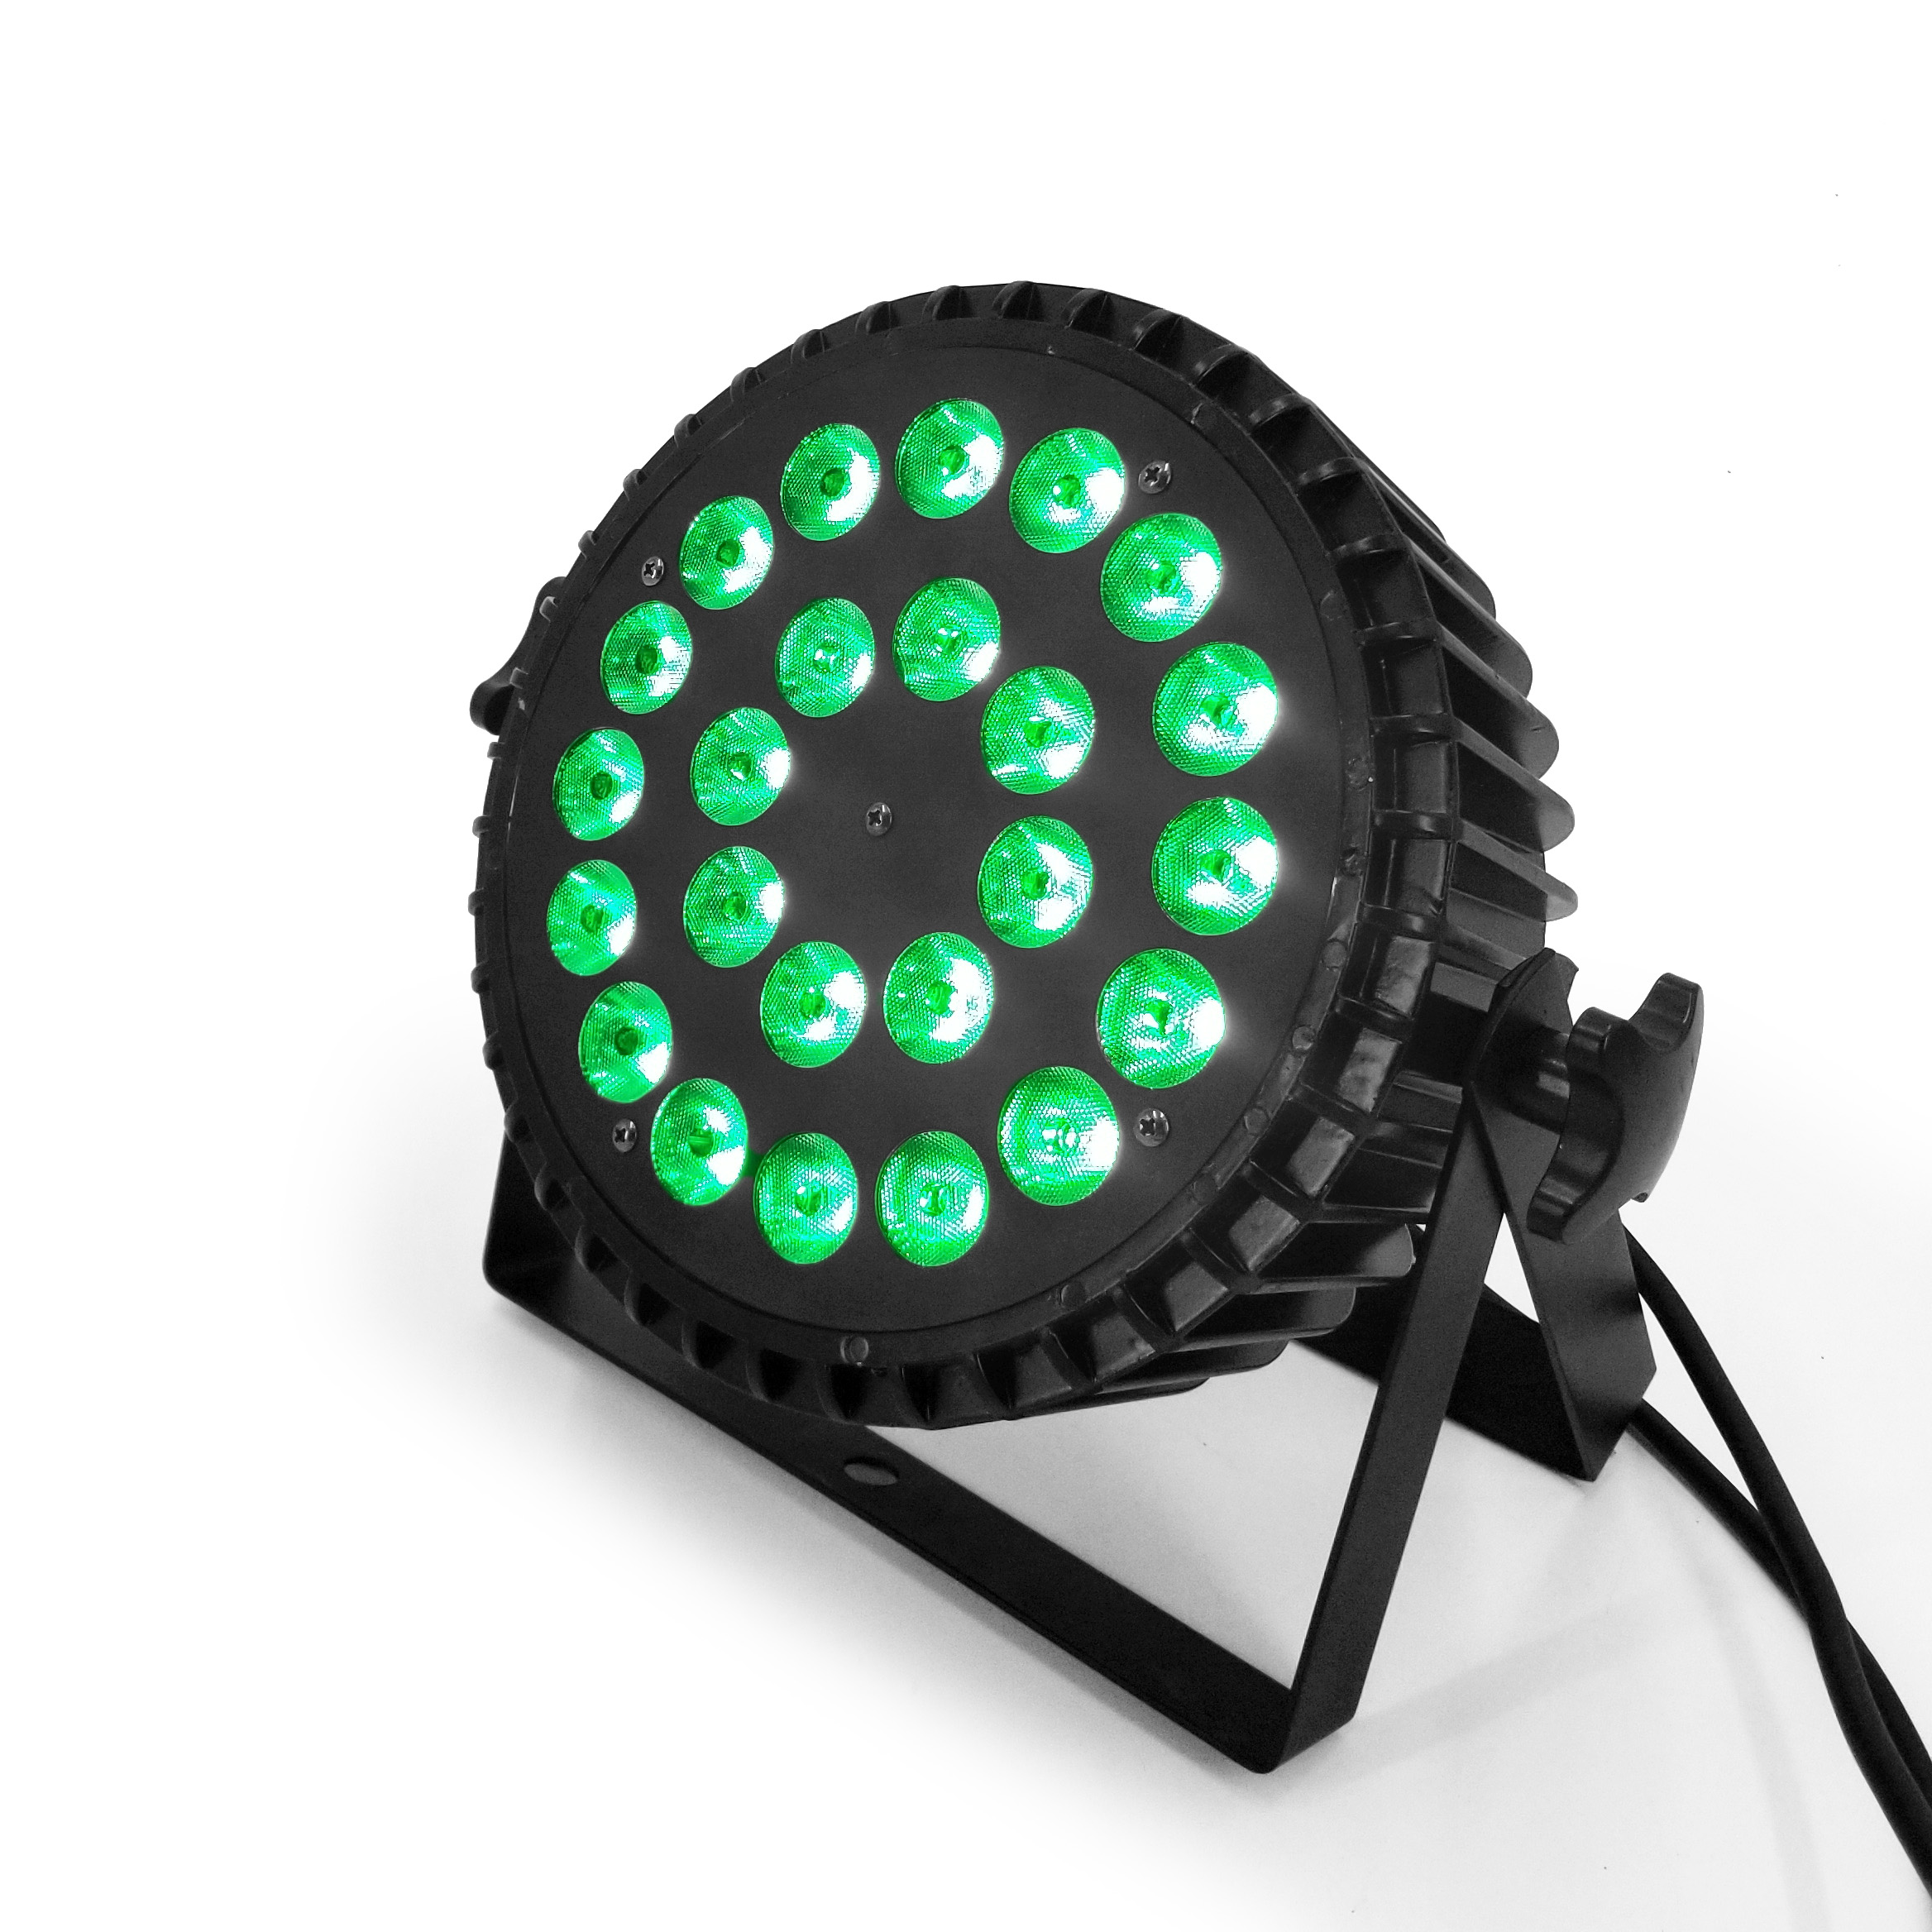 Dj Par Lights 24x18W RGBWA UV 6in1 Led Stage Light RGBW 4in1 Wash Light  Led Strobe Light Using Silent Fan Aluminum Shell